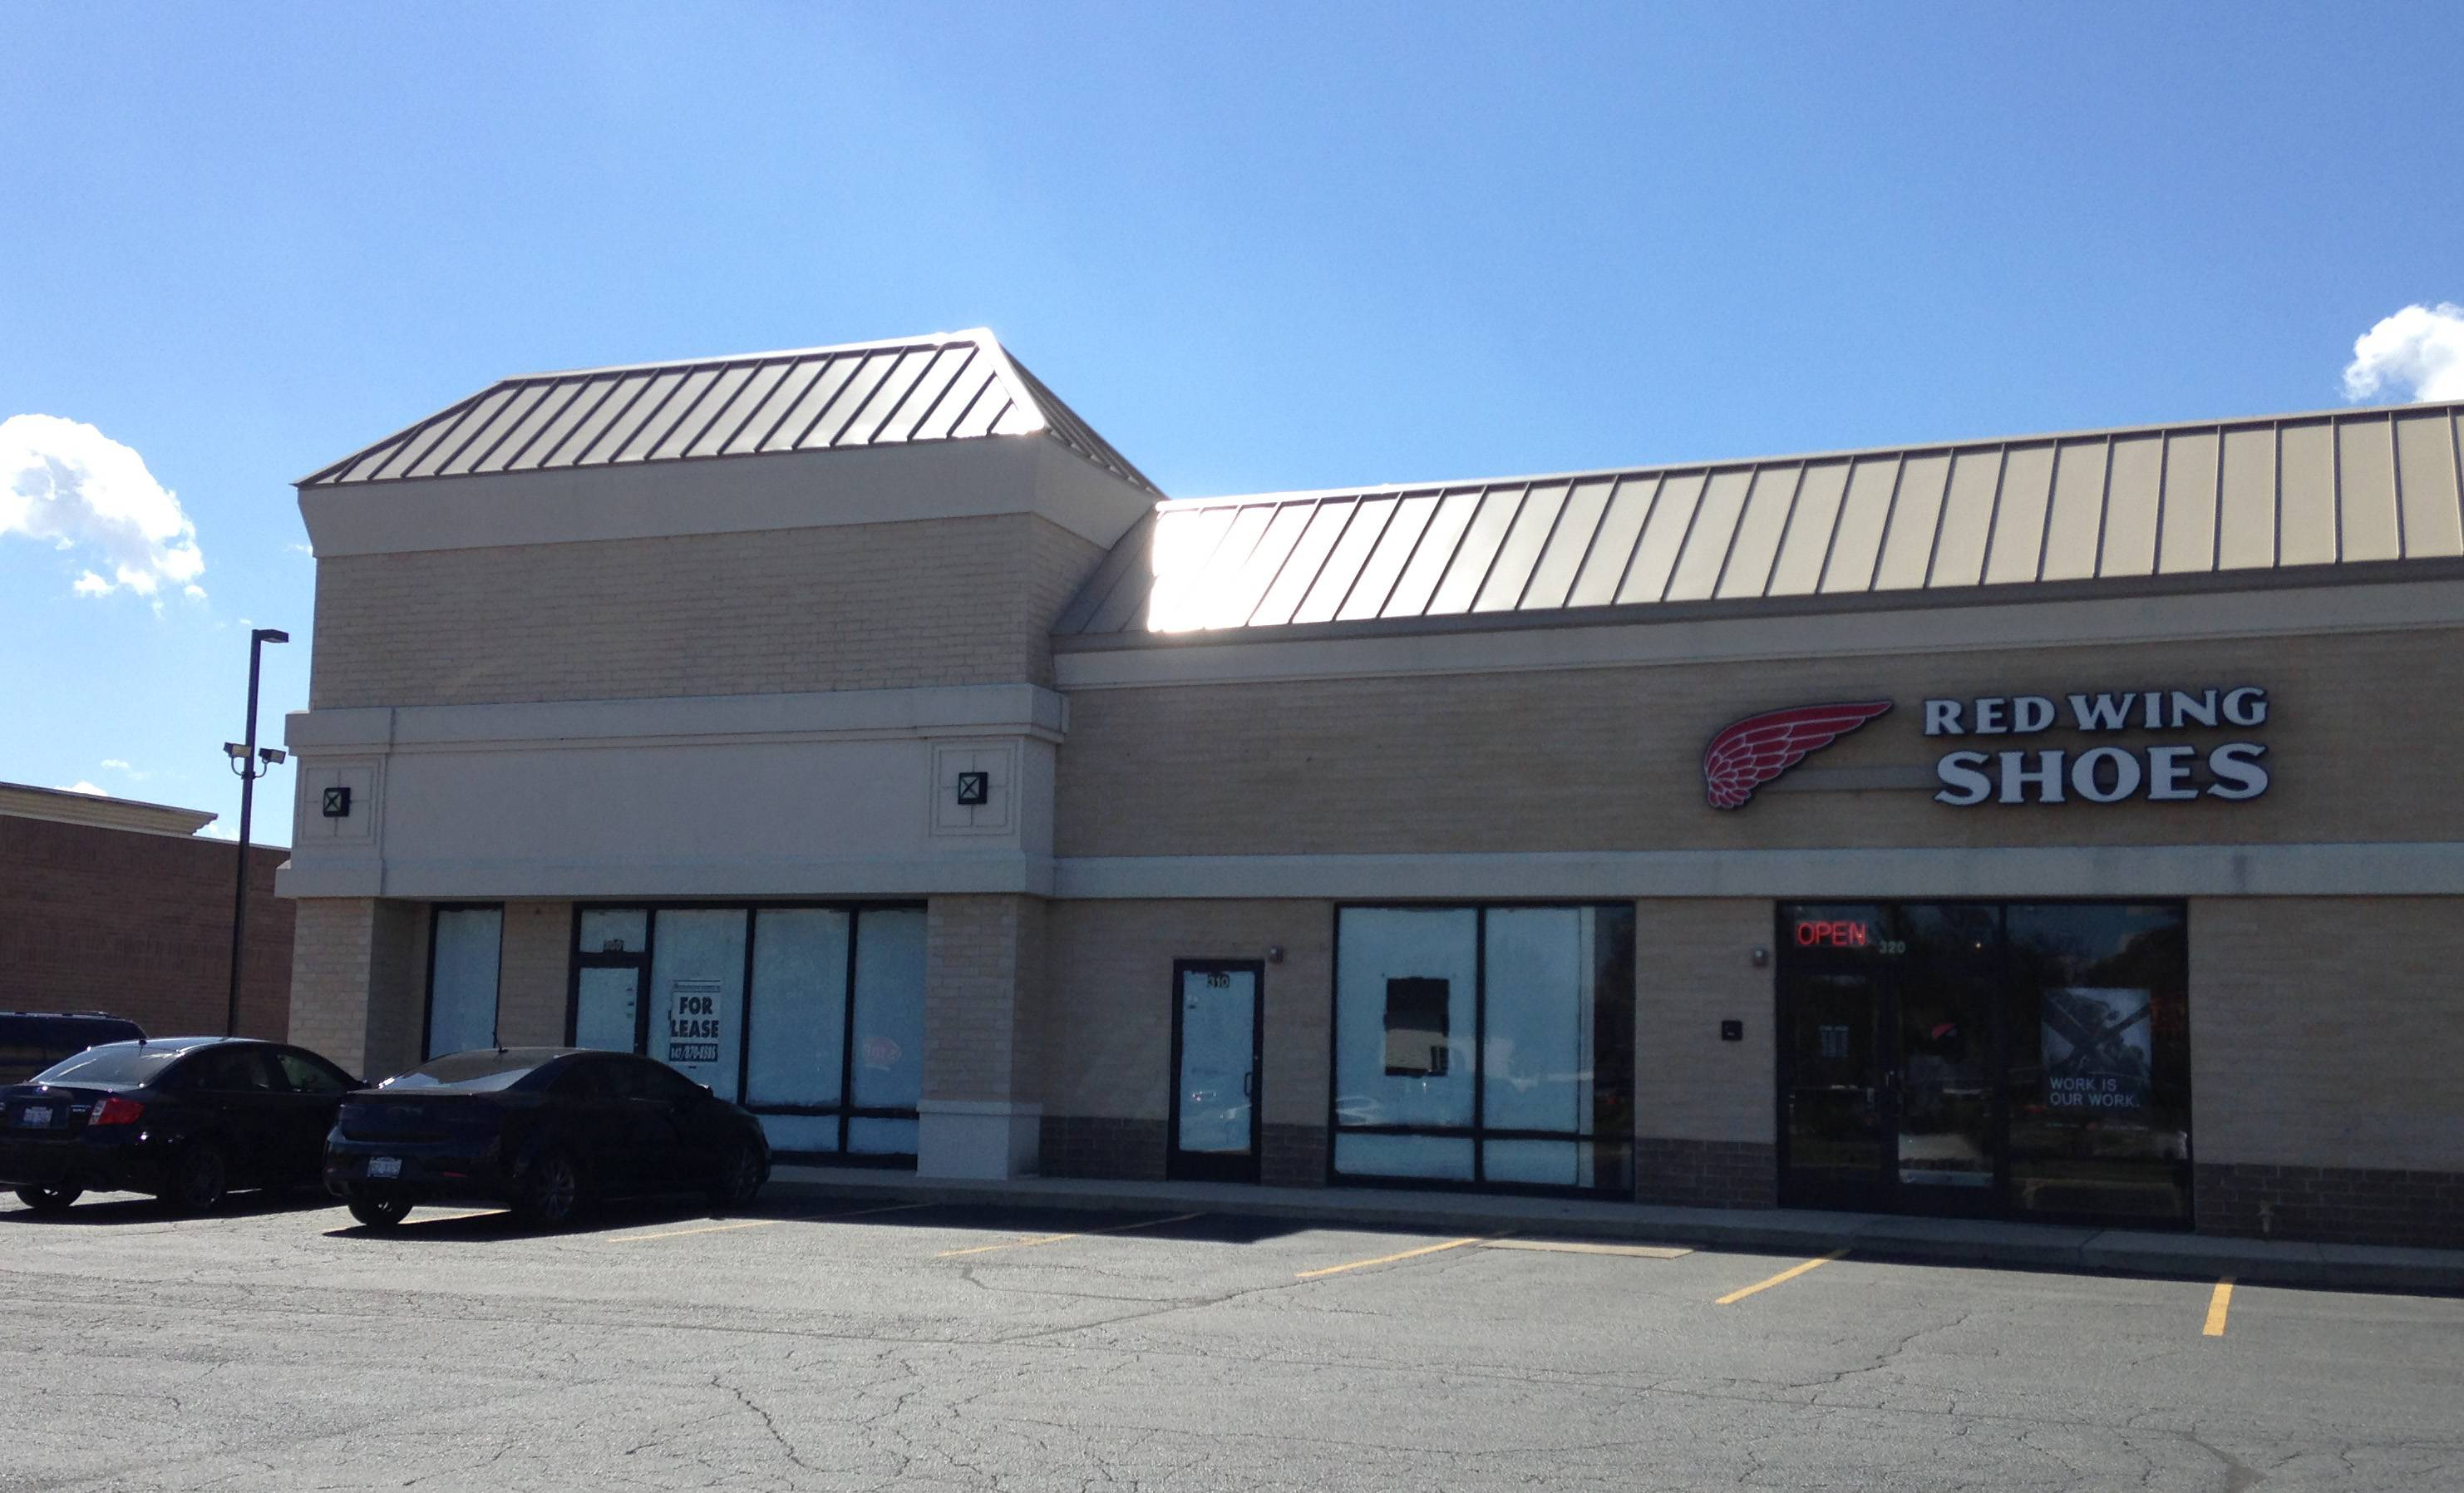 The Salvation Army would like to move into this spot near Spring Hill Mall in West Dundee, but Village President Chris Nelson says the business is more appropriate in a strip mall on Route 31, south of Route 72.